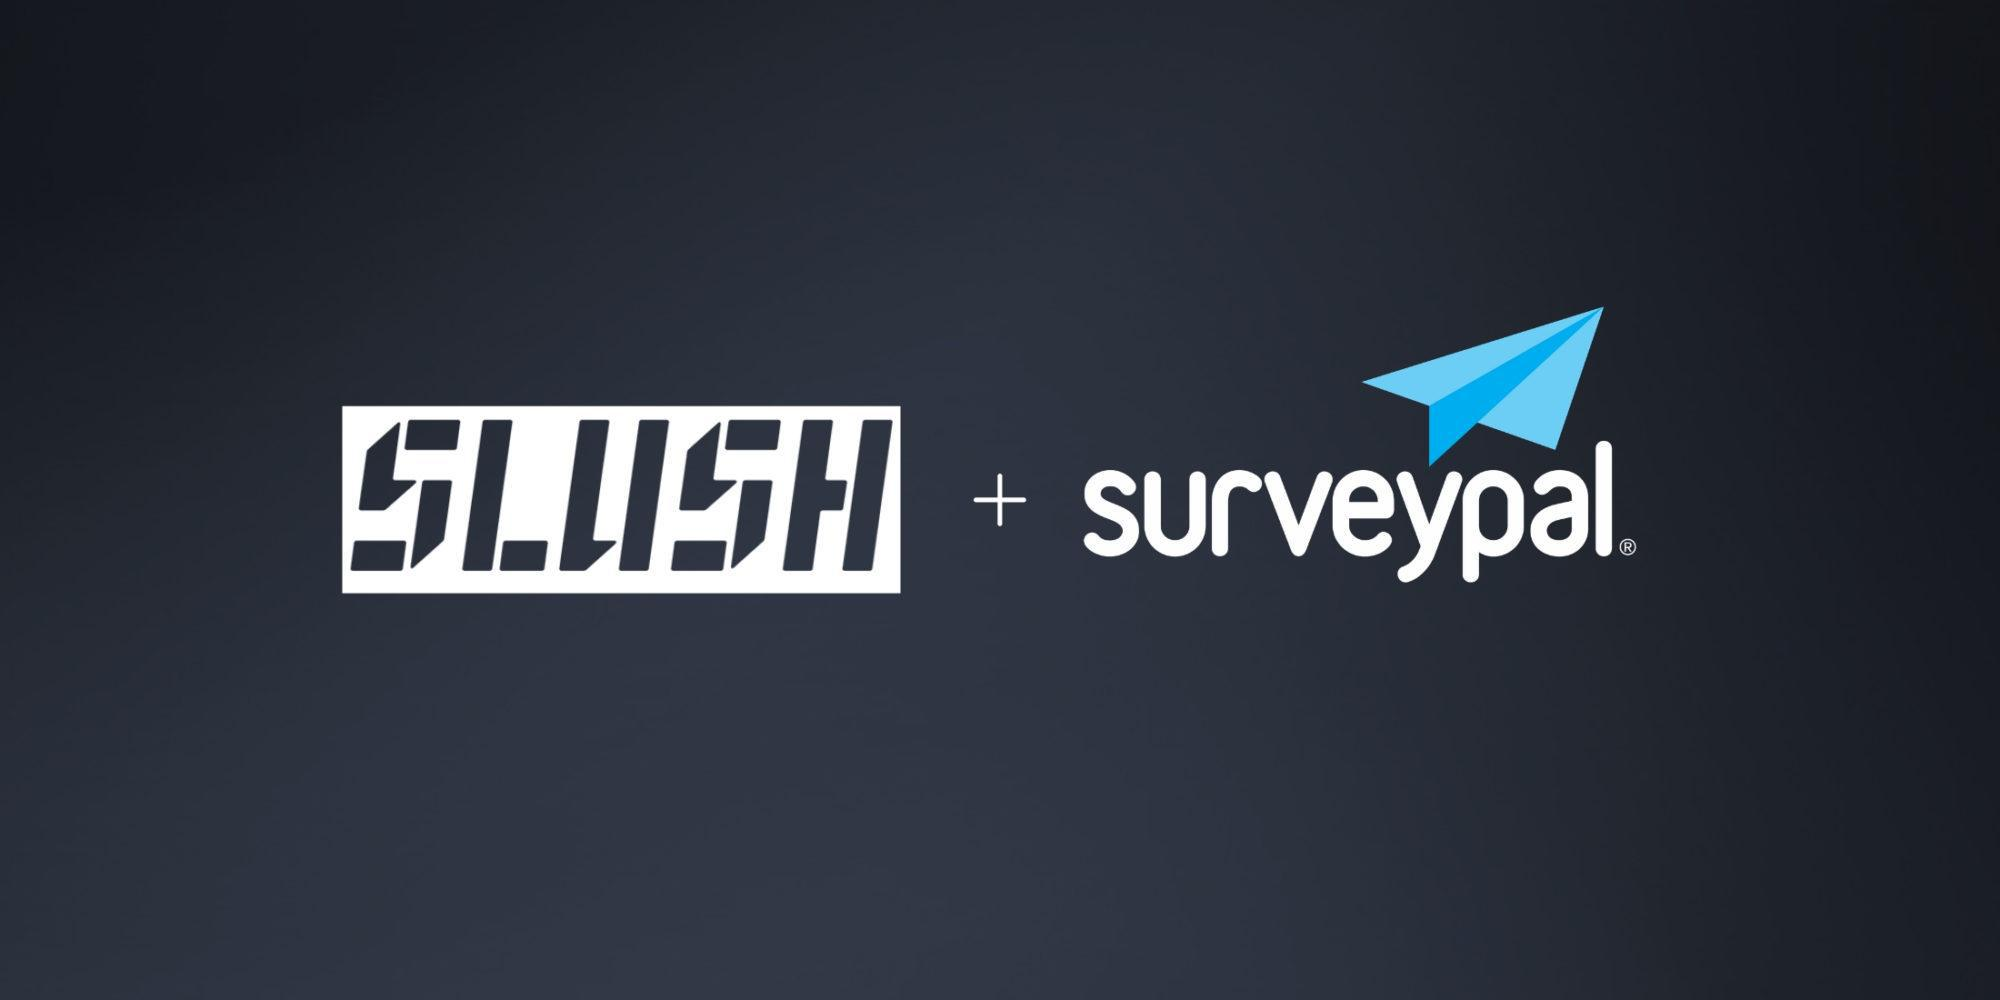 Slush Surveys